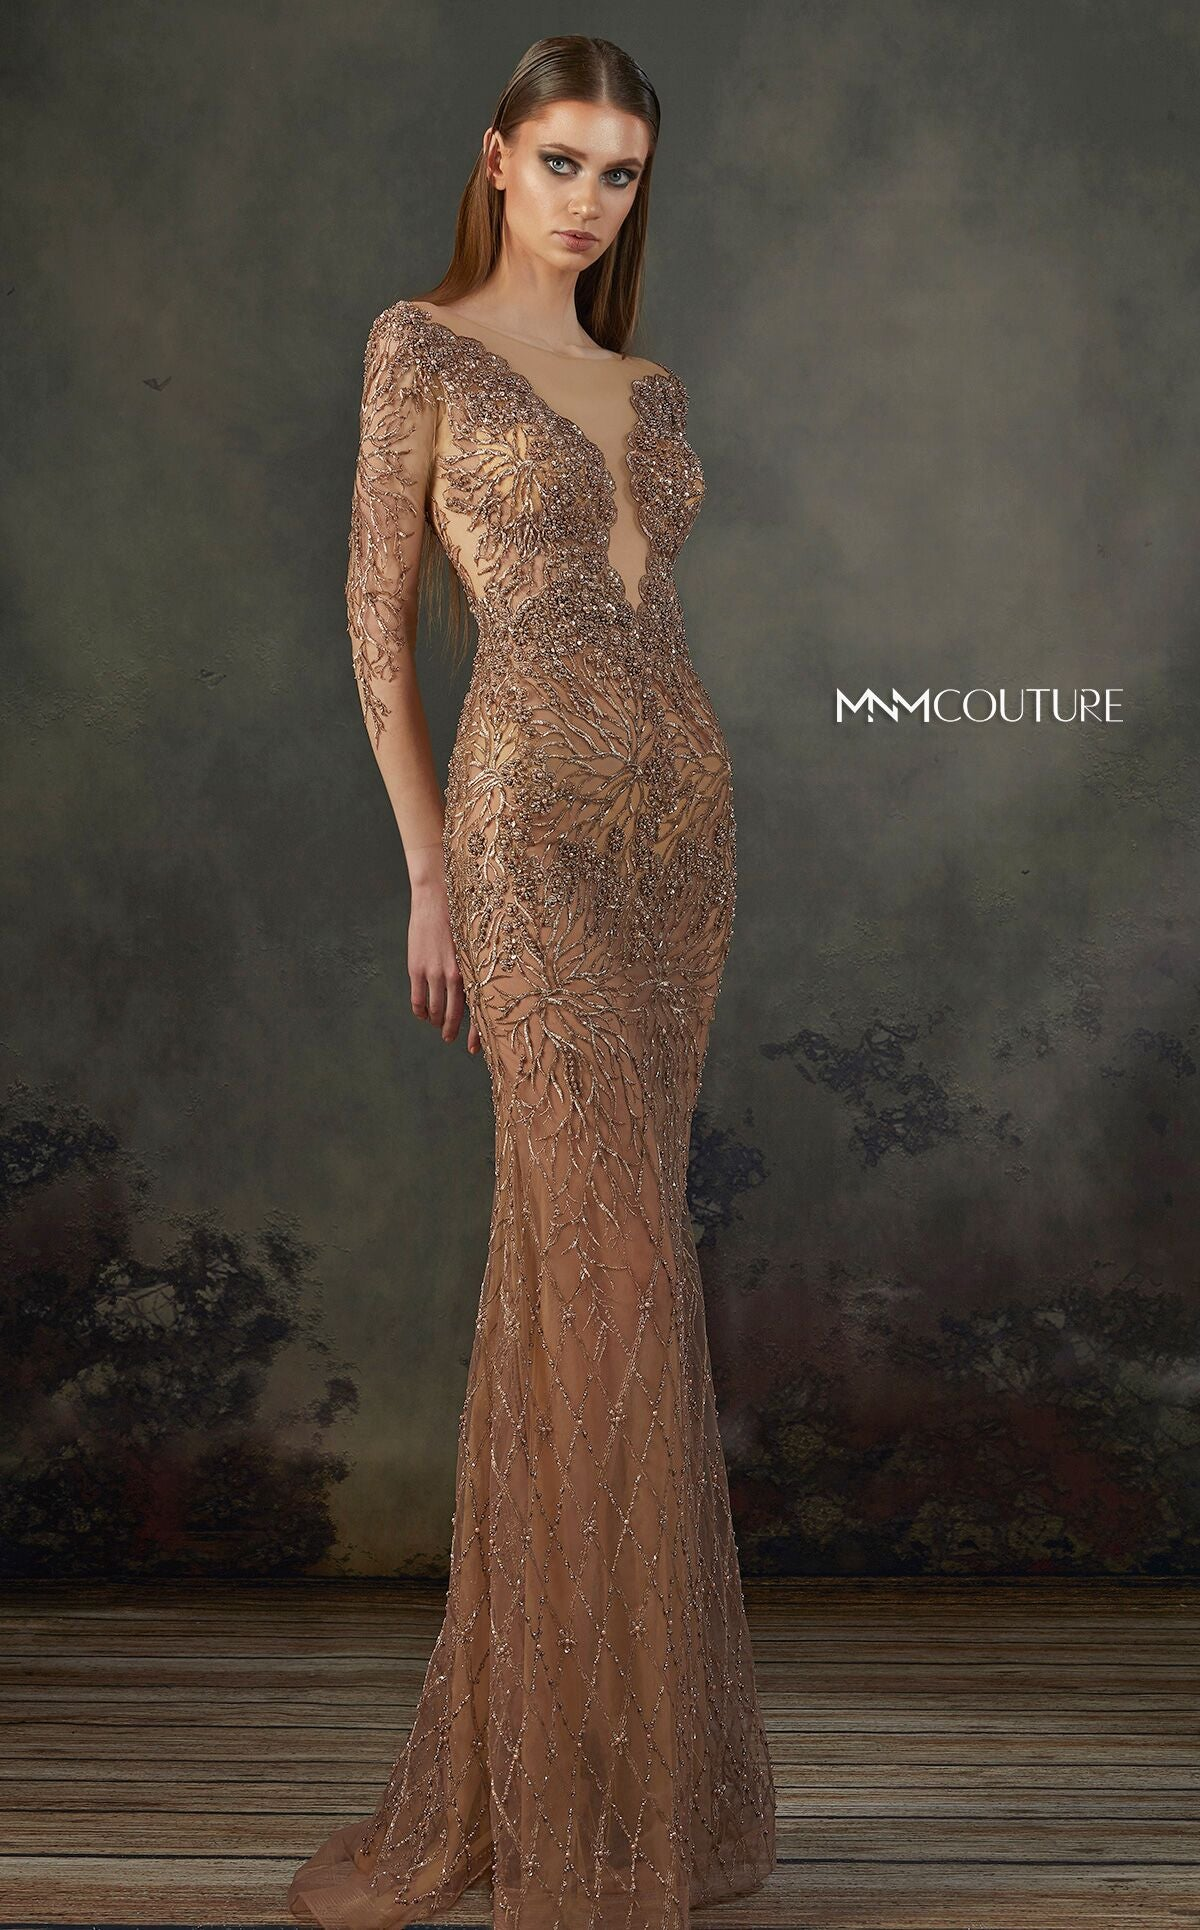 Style K3720-MNM COUTURE-onlinemarkat